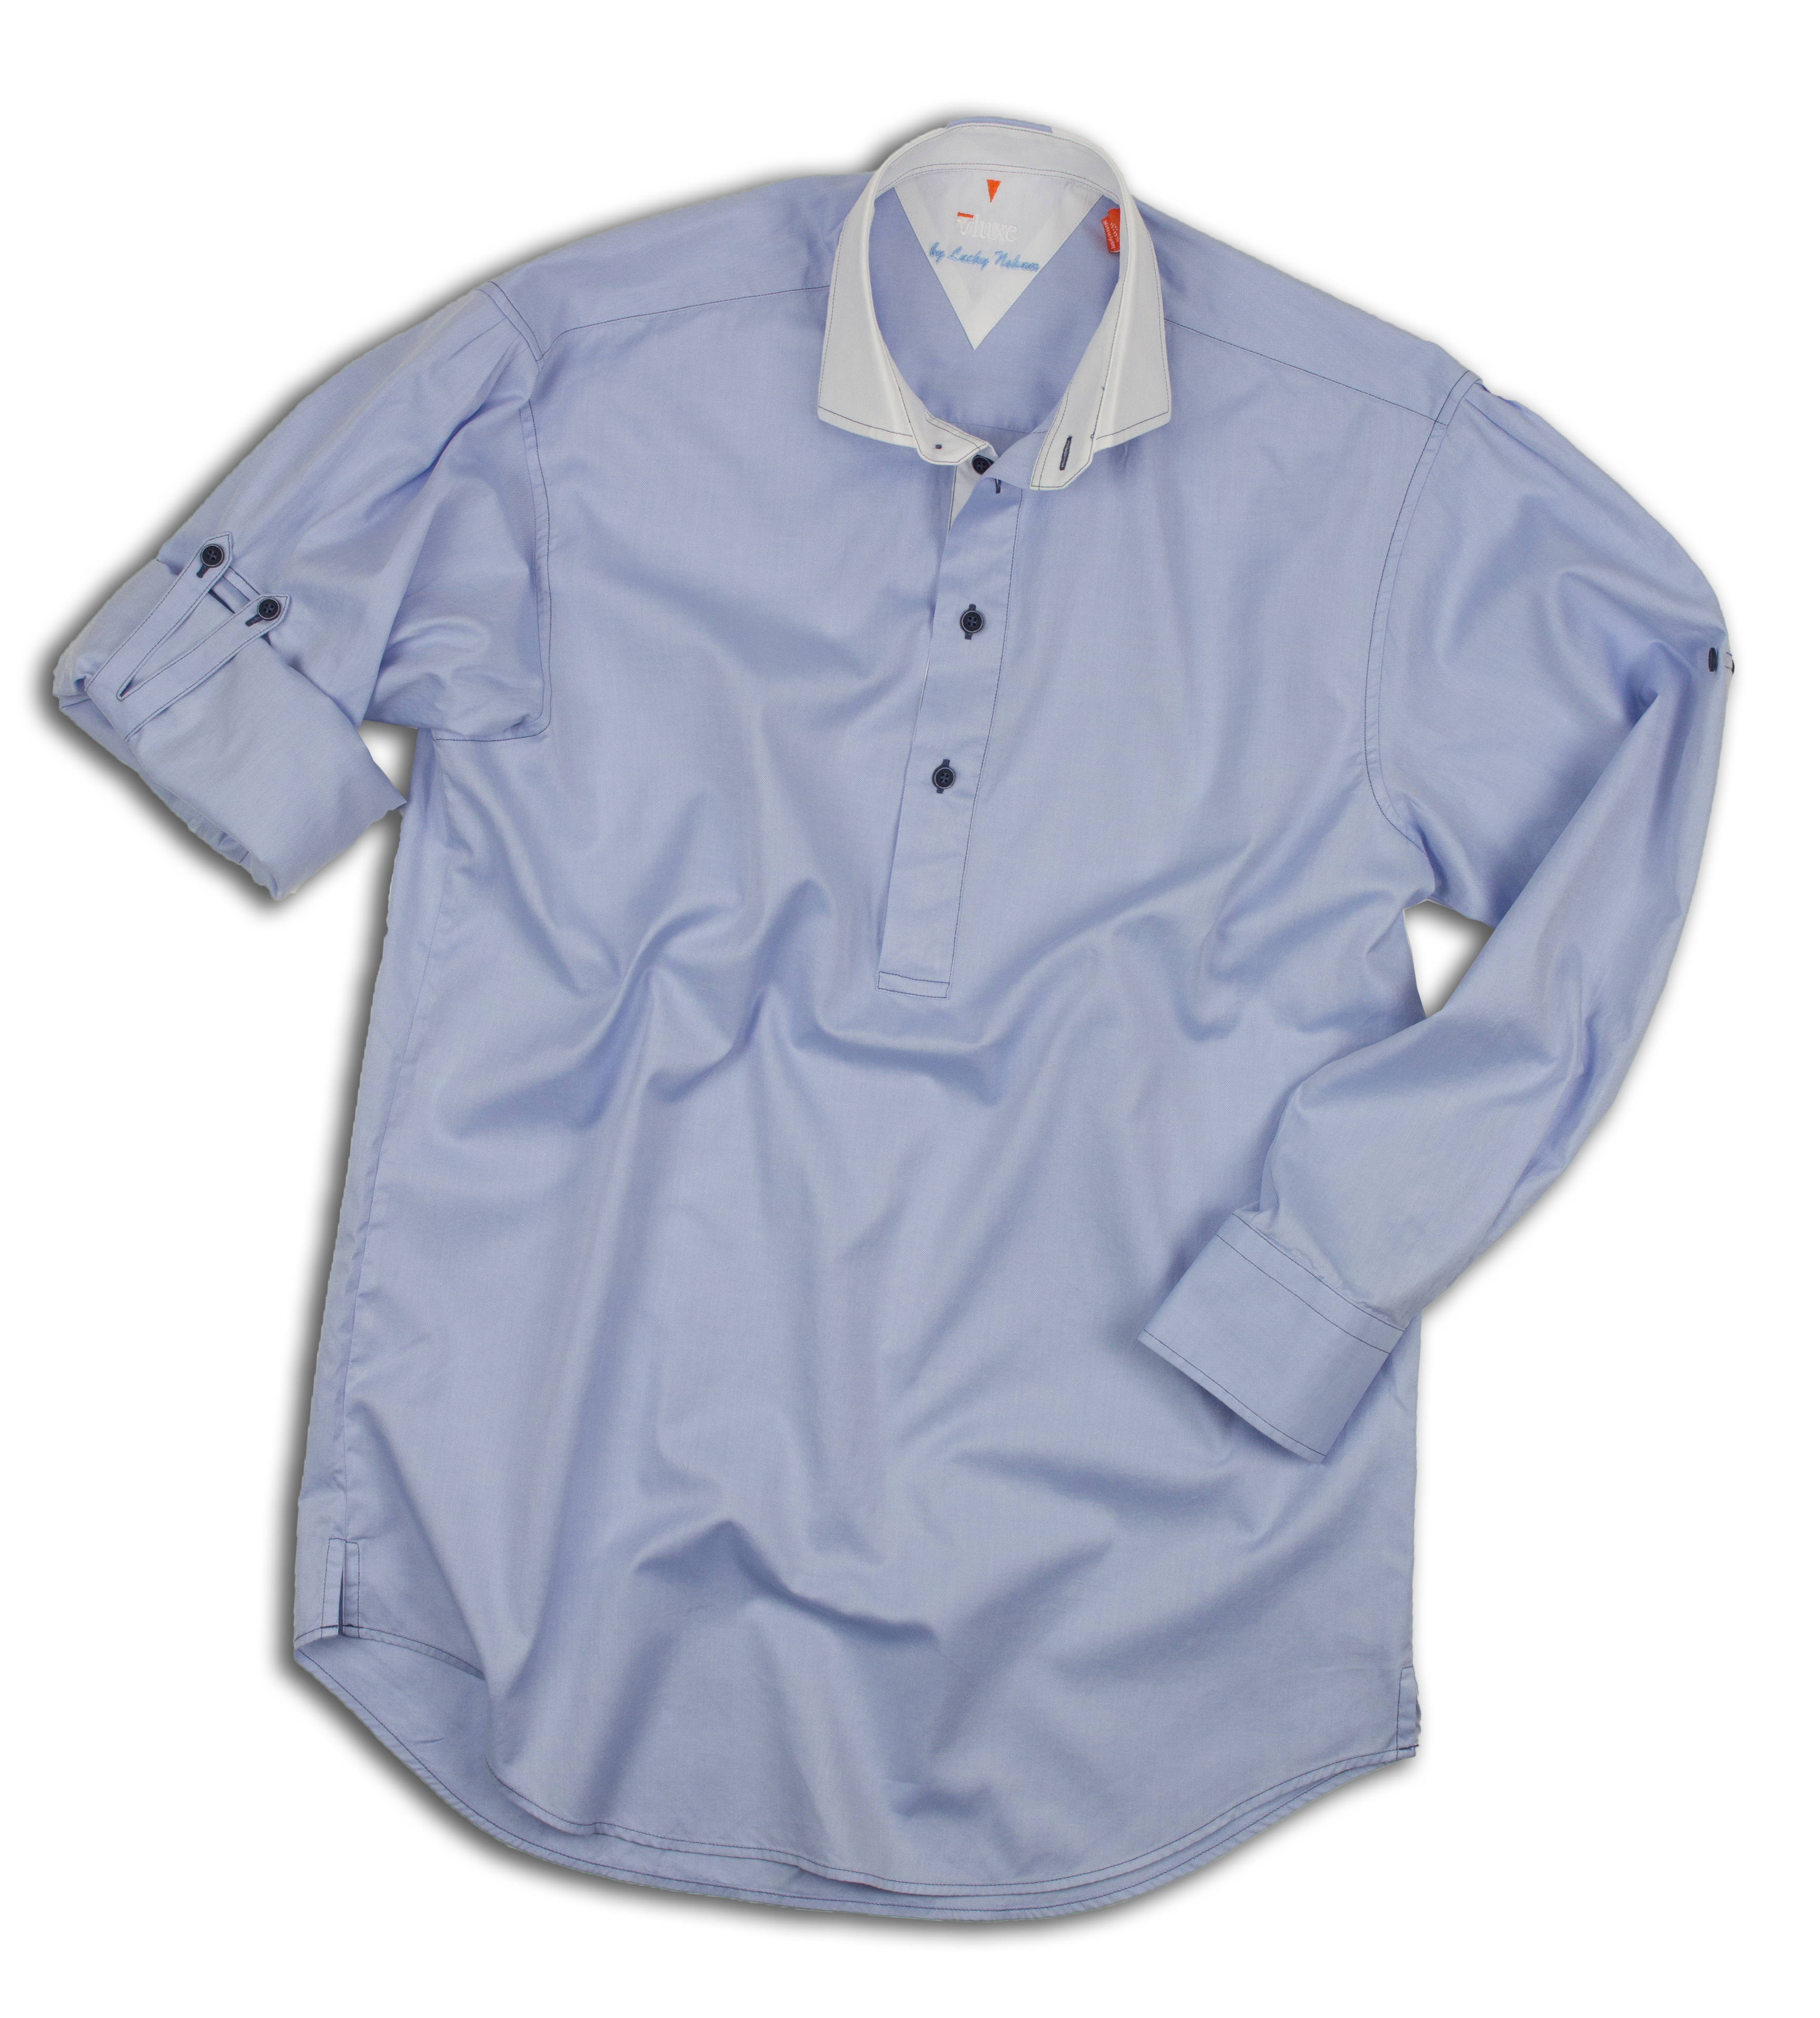 The Pop-Over Button Up Shirt